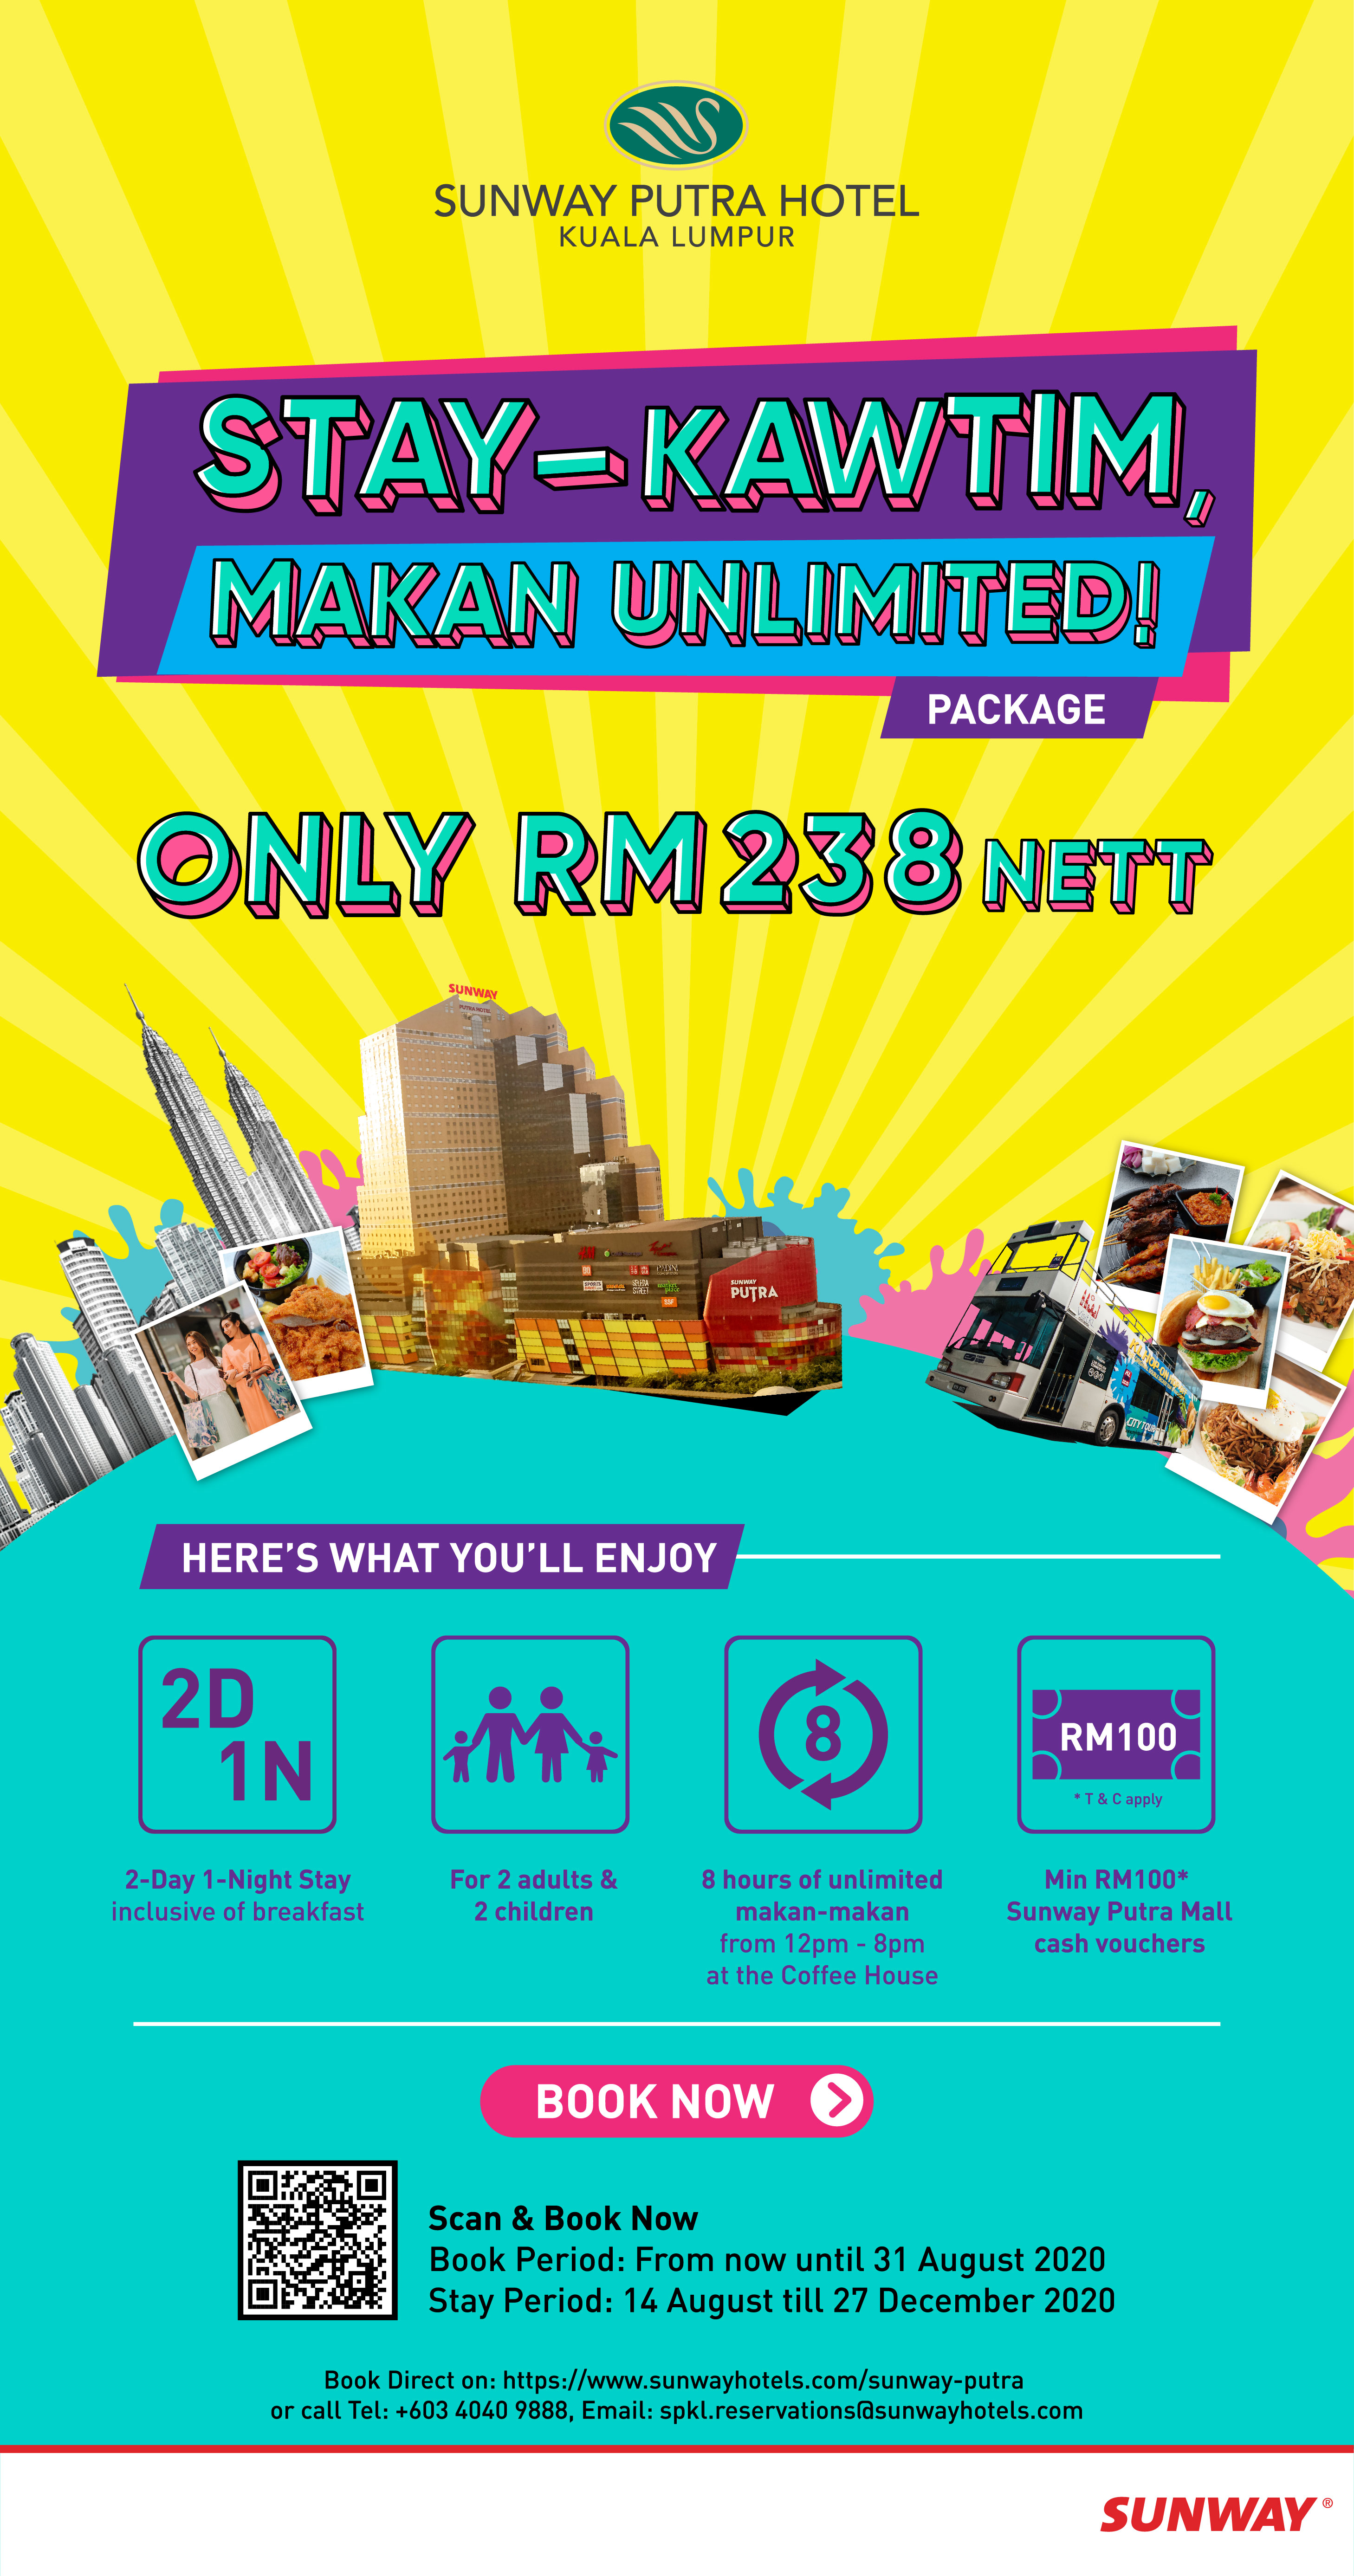 Image from Sunway